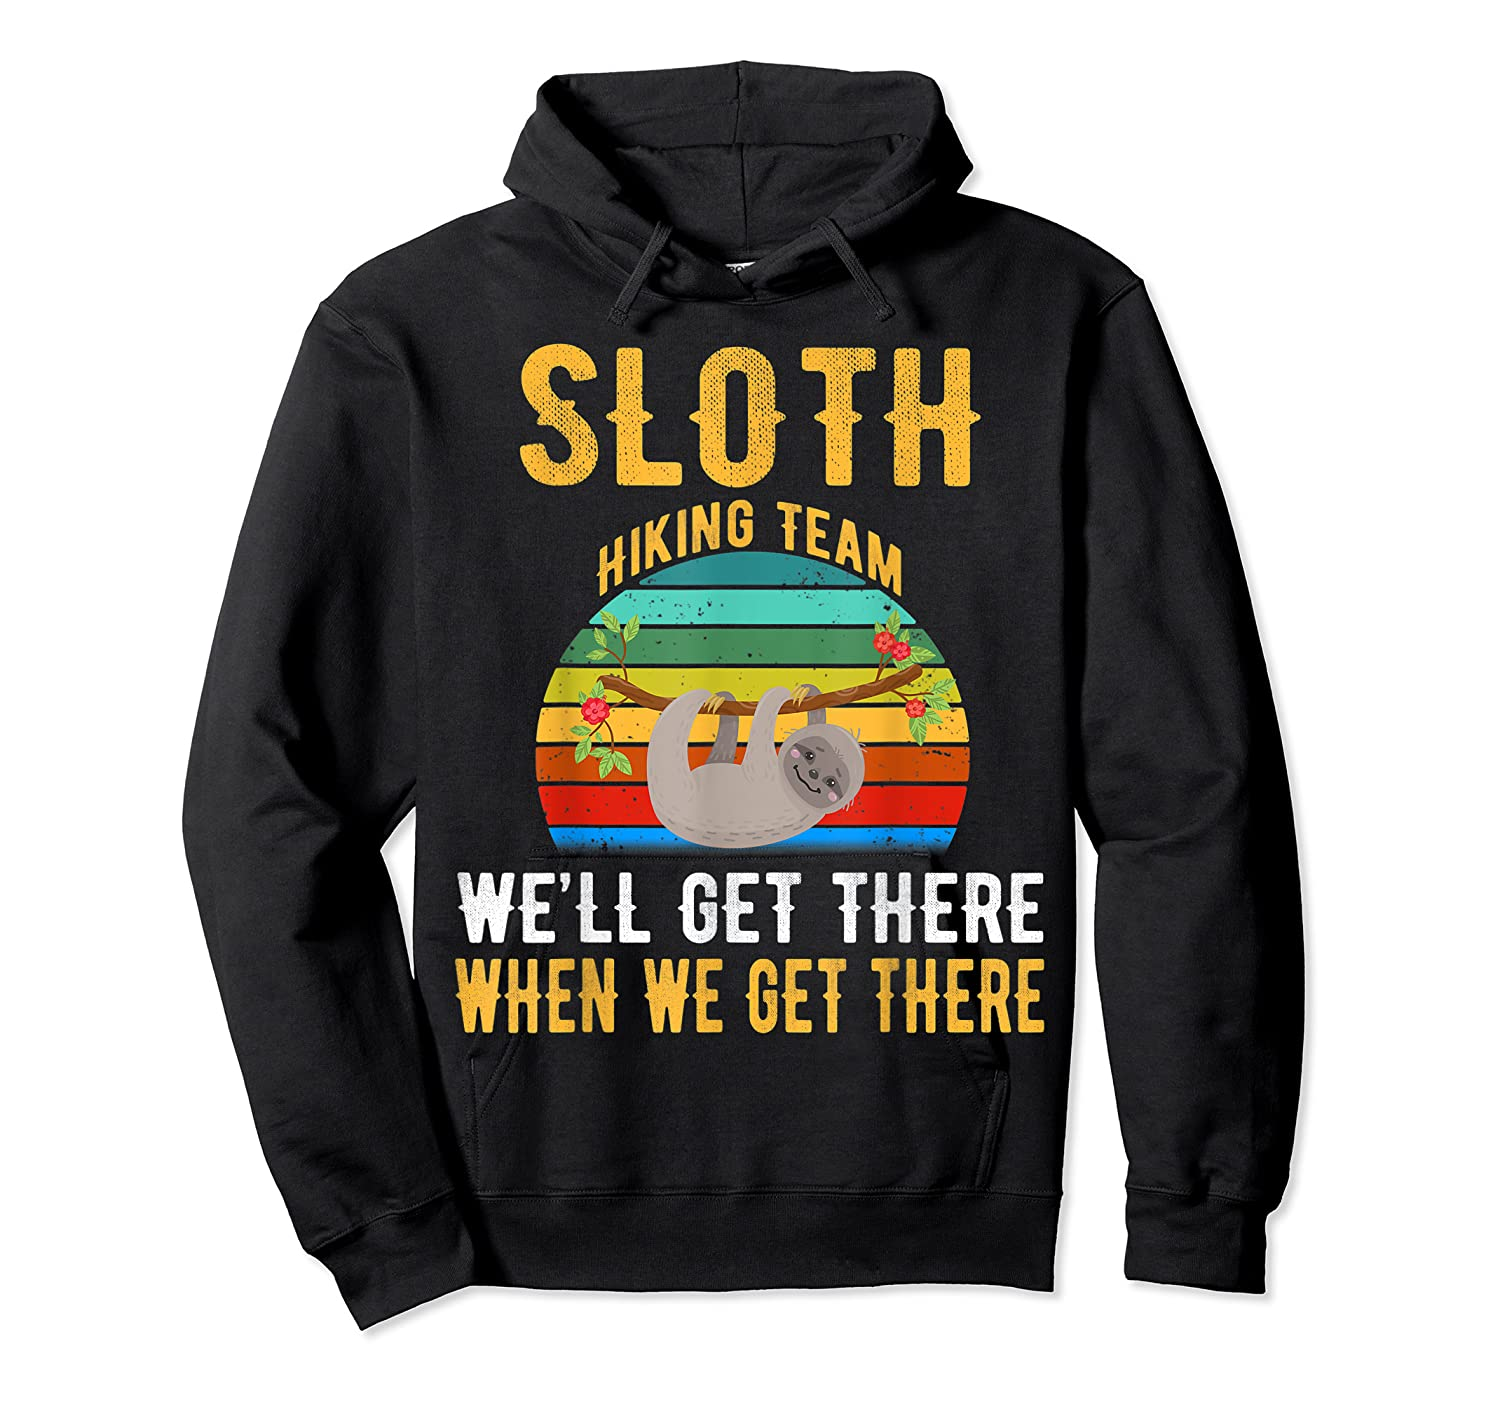 Sloth Hiking Team We Will Get There When Get There Shirt Unisex Pullover Hoodie